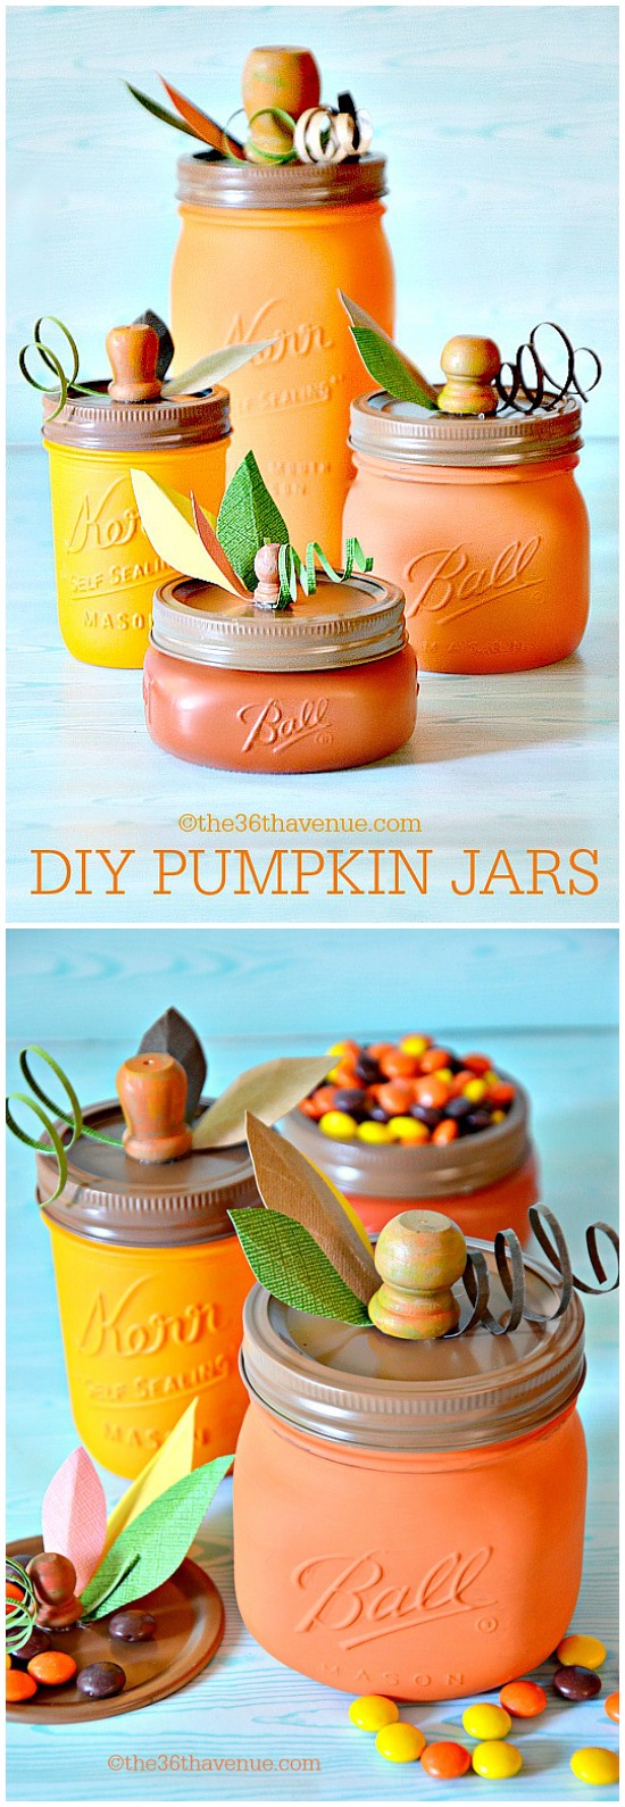 Mason Jar Crafts You Can Make In Under an Hour - DIY Pumpkin Mason Jars - Quick Mason Jar DIY Projects that Make Cool Home Decor and Awesome DIY Gifts - Best Creative Ideas for Mason Jars with Step By Step Tutorials and Instructions - For Teens, For Home, For Gifts, For Kids, For Summer, For Fall  #masonjarcrafts #easycrafts